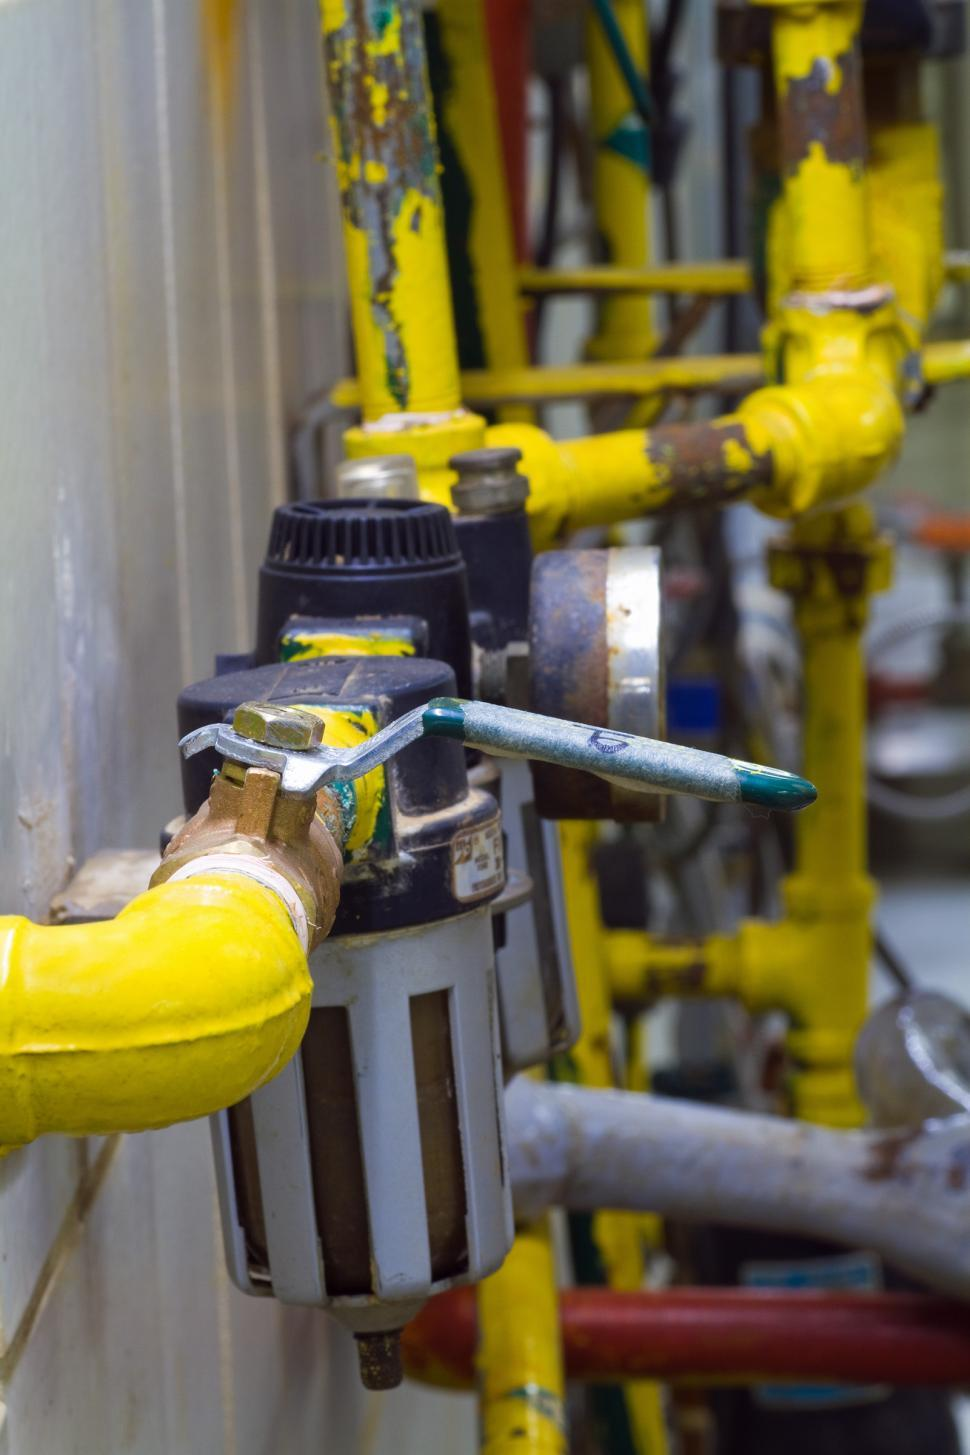 Download Free Stock HD Photo of Pipes and Valves Online